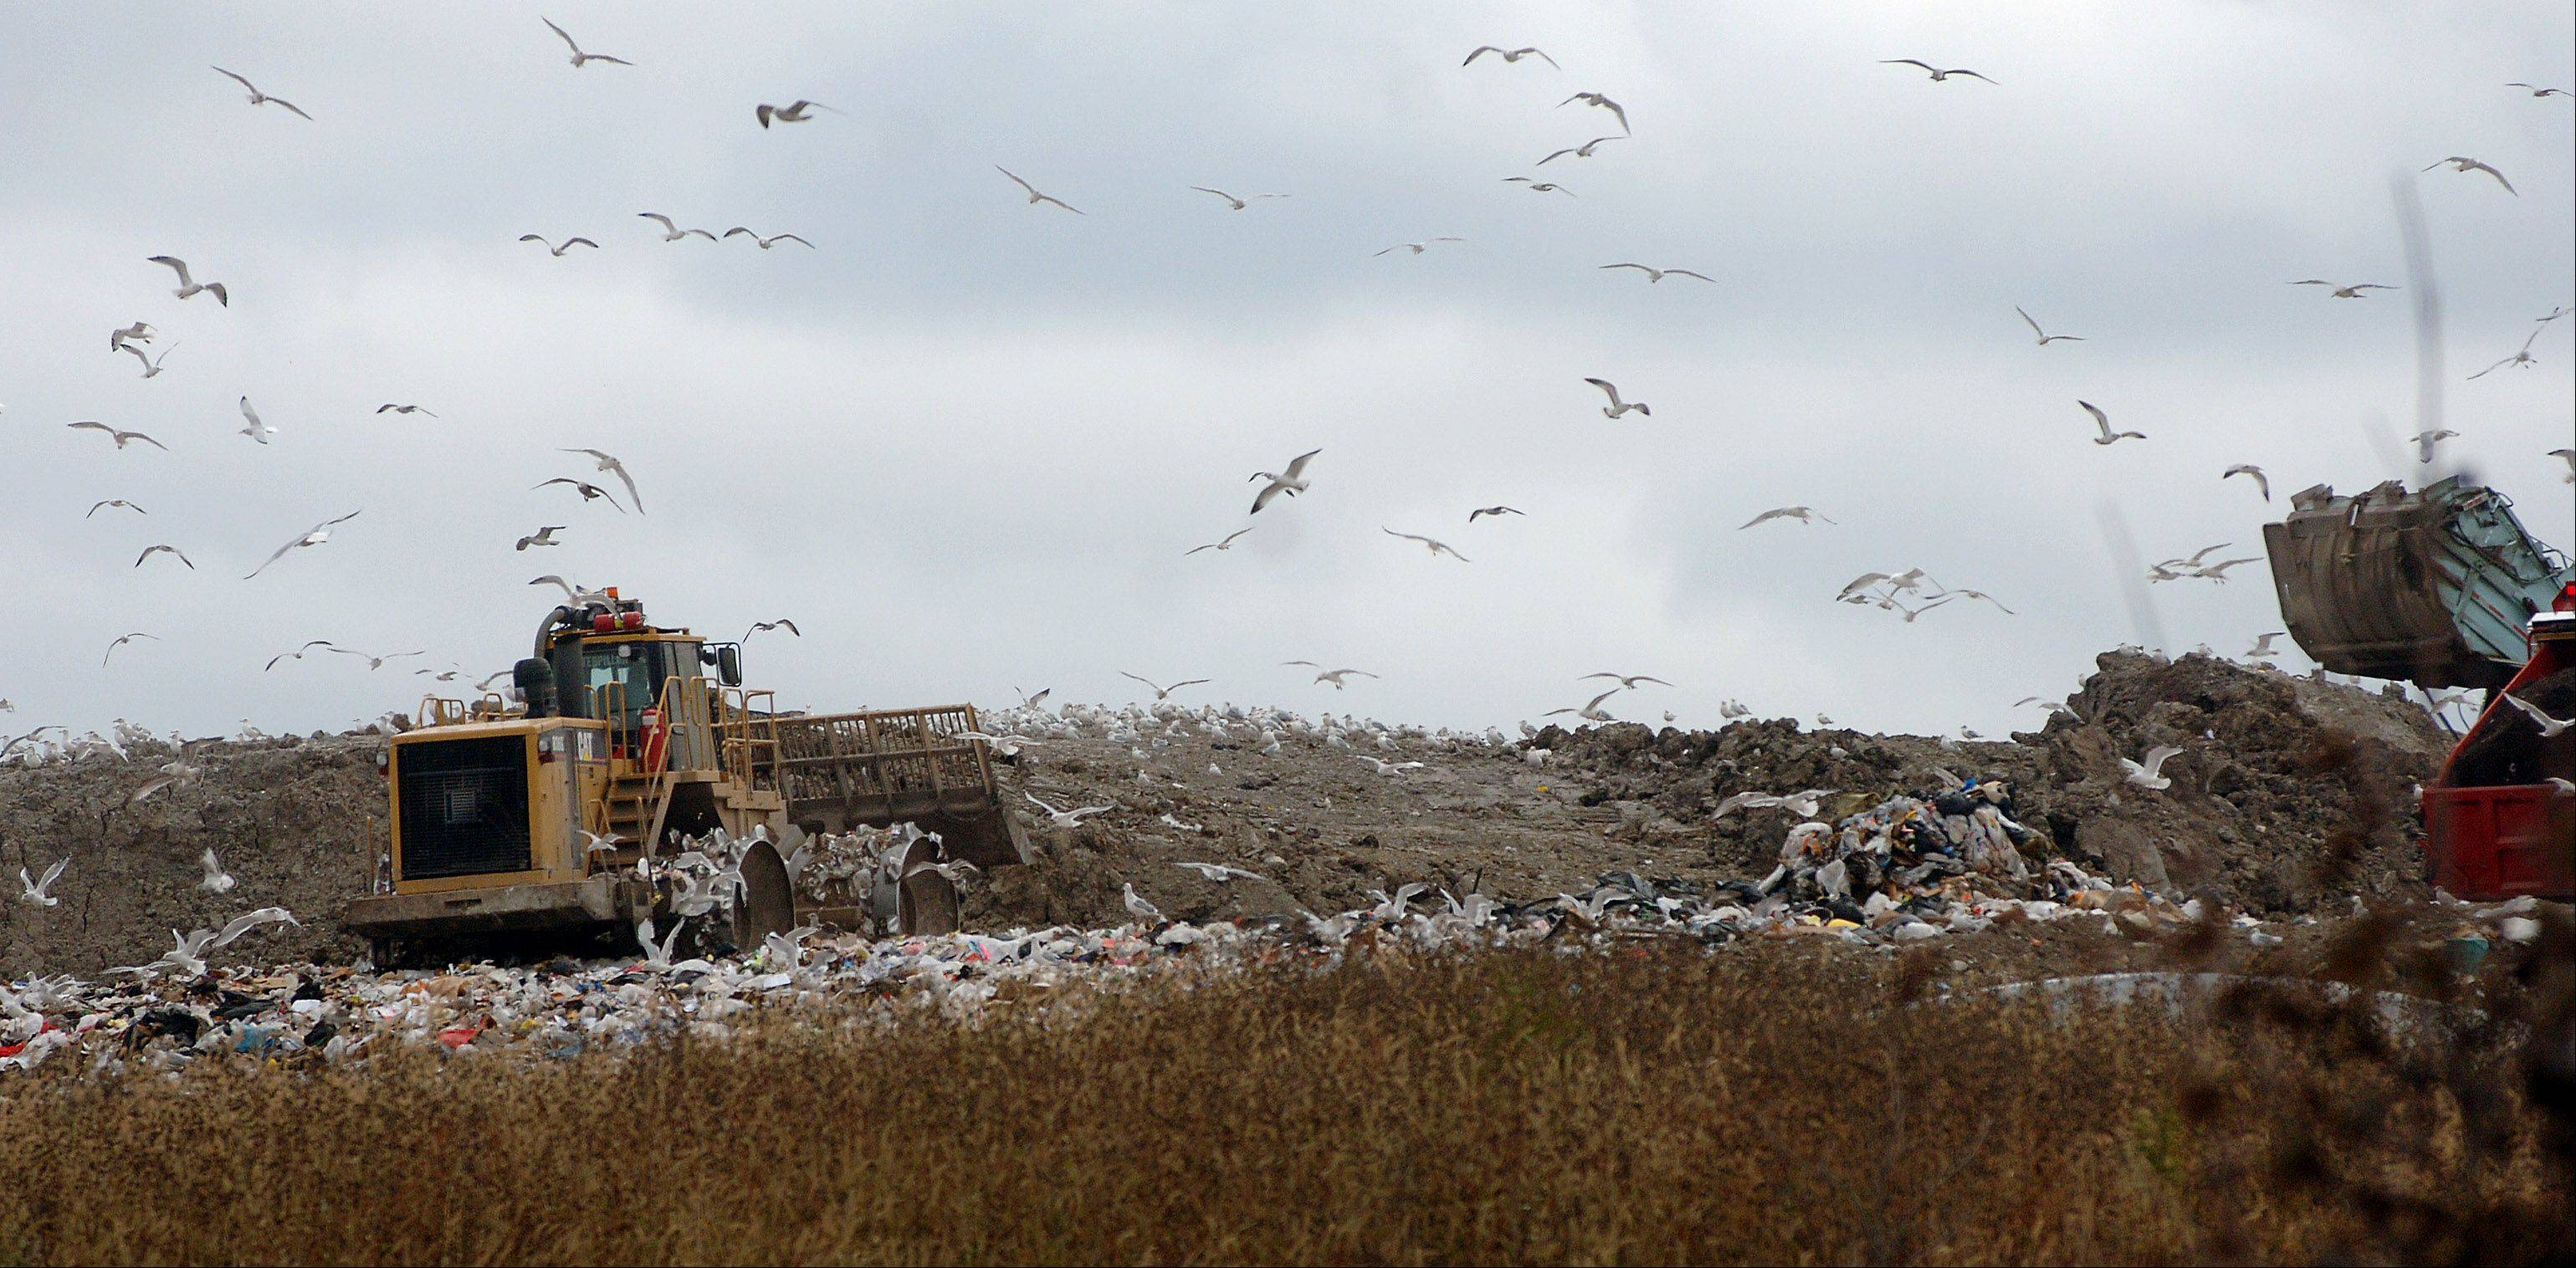 There will be a big push to recycle more and dump less trash in landfills, such as the Countryside facility on Route 83 in Grayslake.